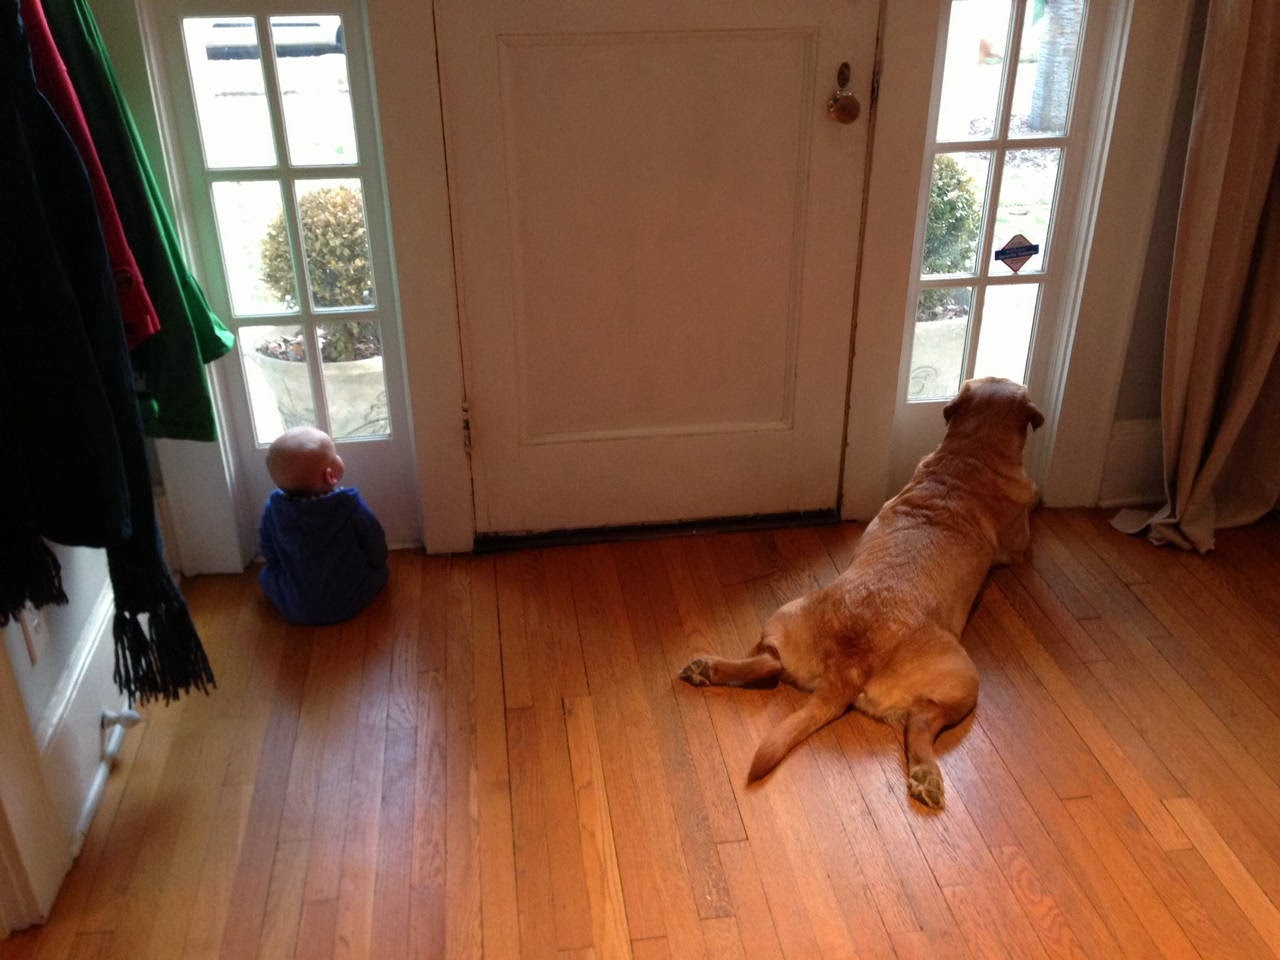 Cute dogs - part 8 (50 pics), dog and baby looking through the window